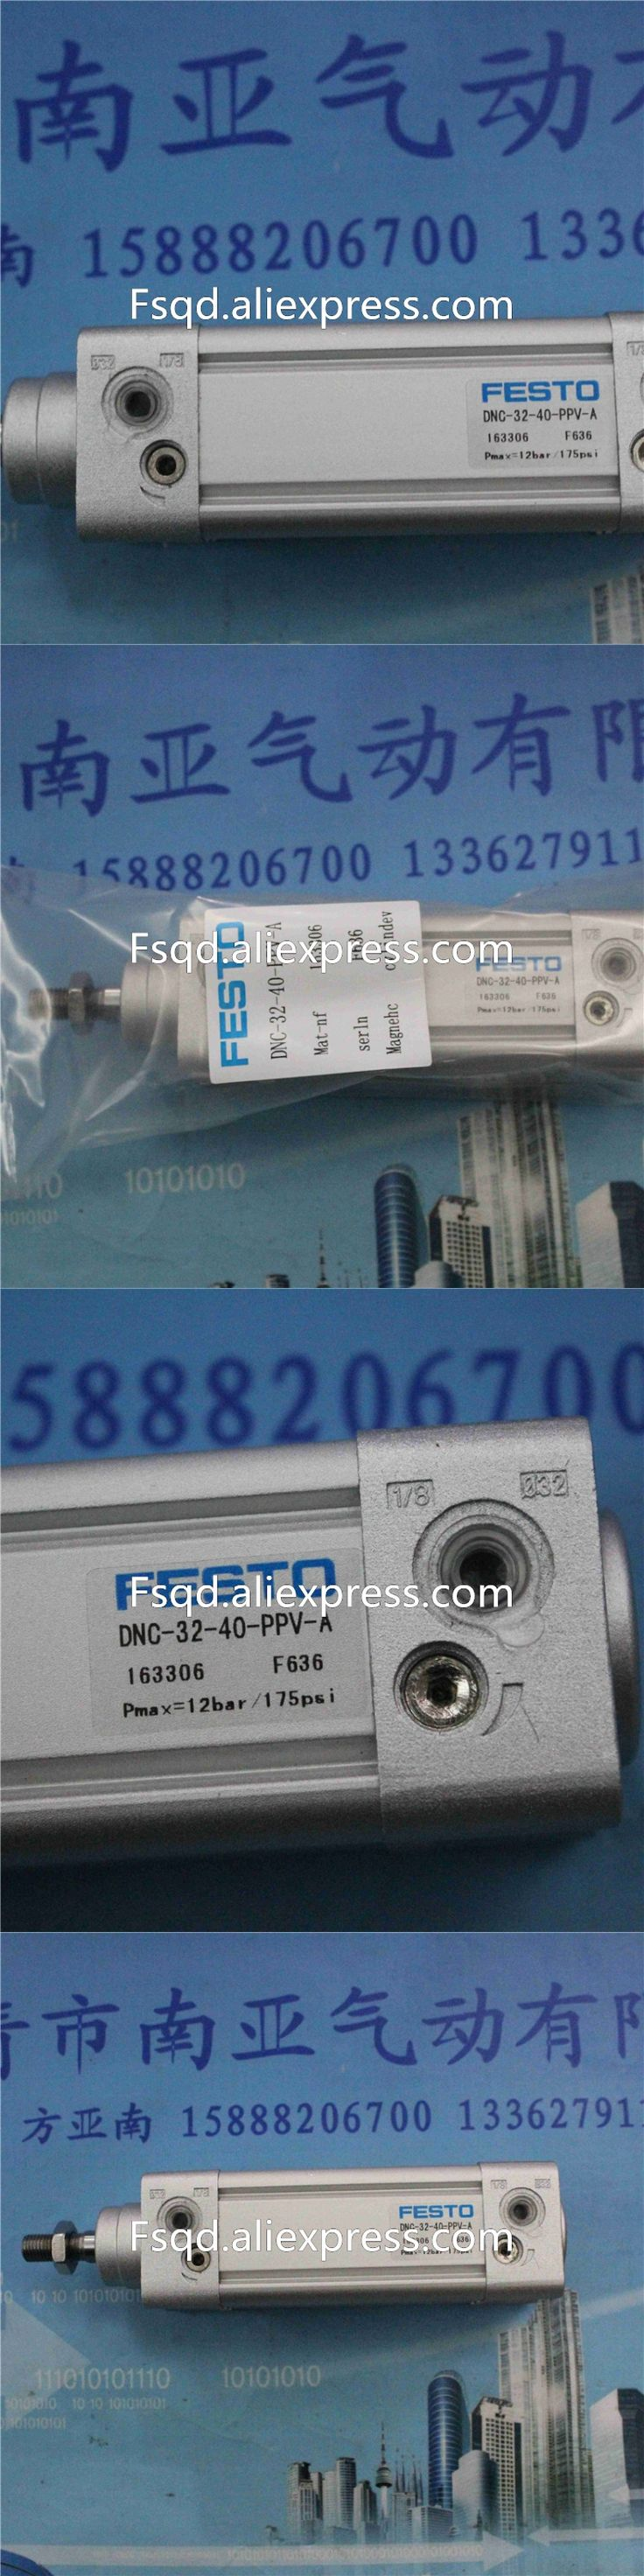 DNC-32-40-PPV-A  FESTO thin cylinder piston cylinder pneumatic components pneumatic tools